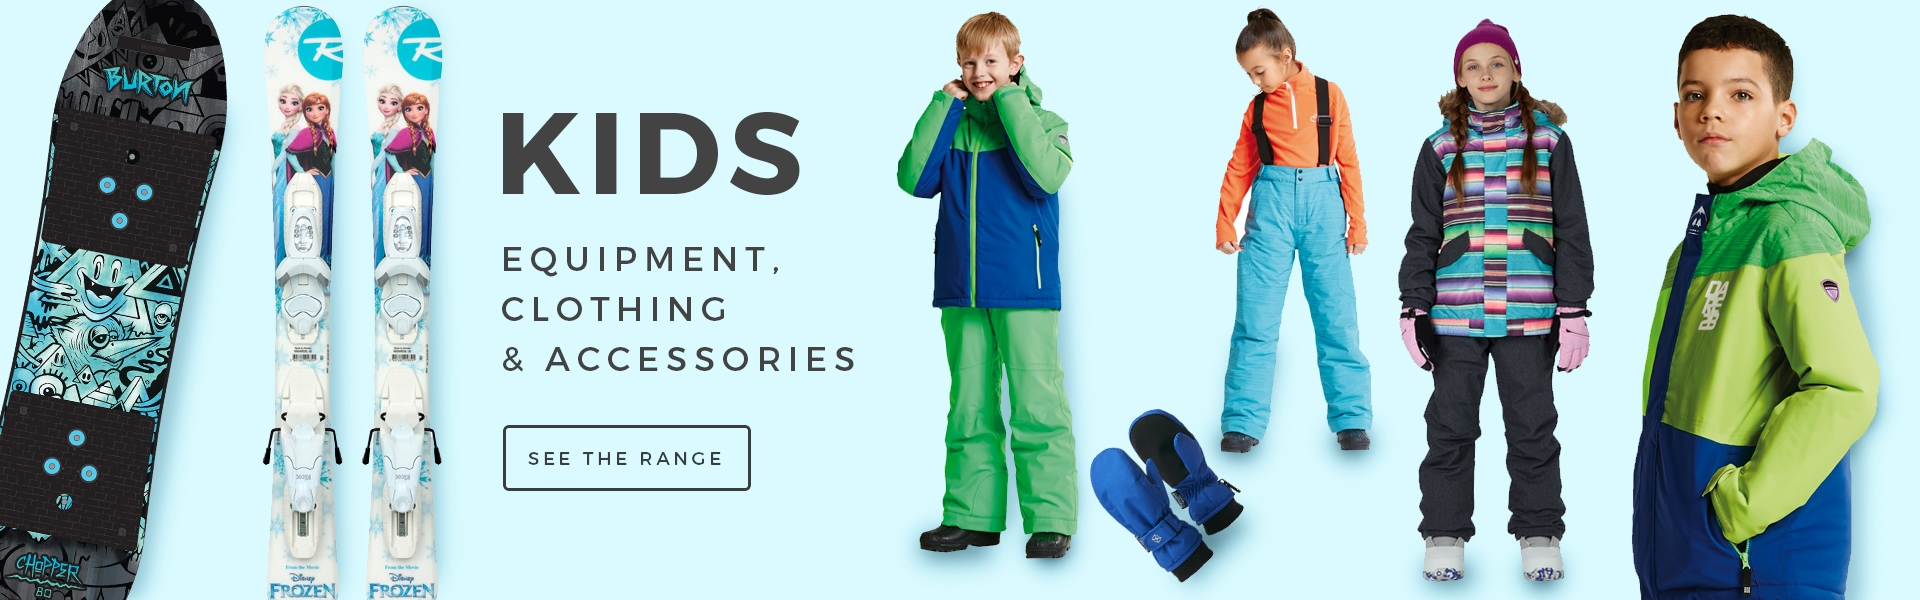 Buy Childrens Ski Clothing and Equipment Online